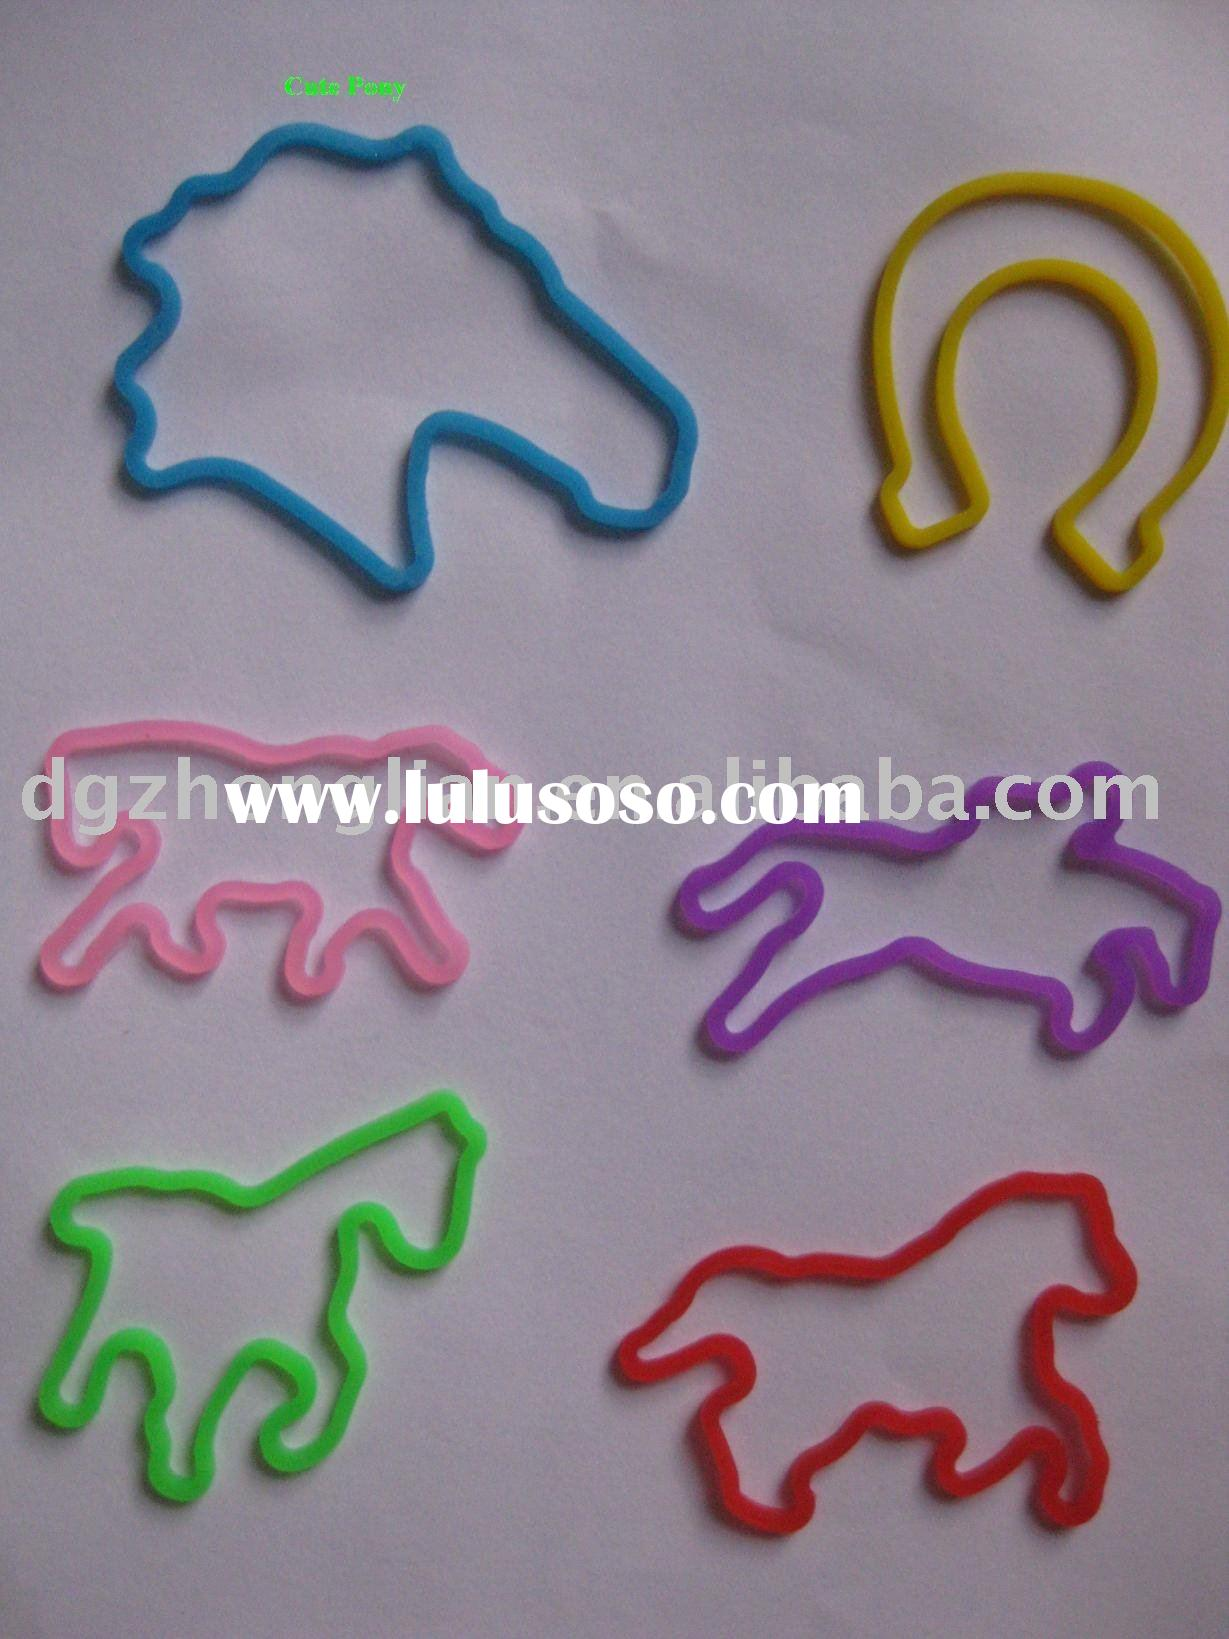 shaped silicone bands